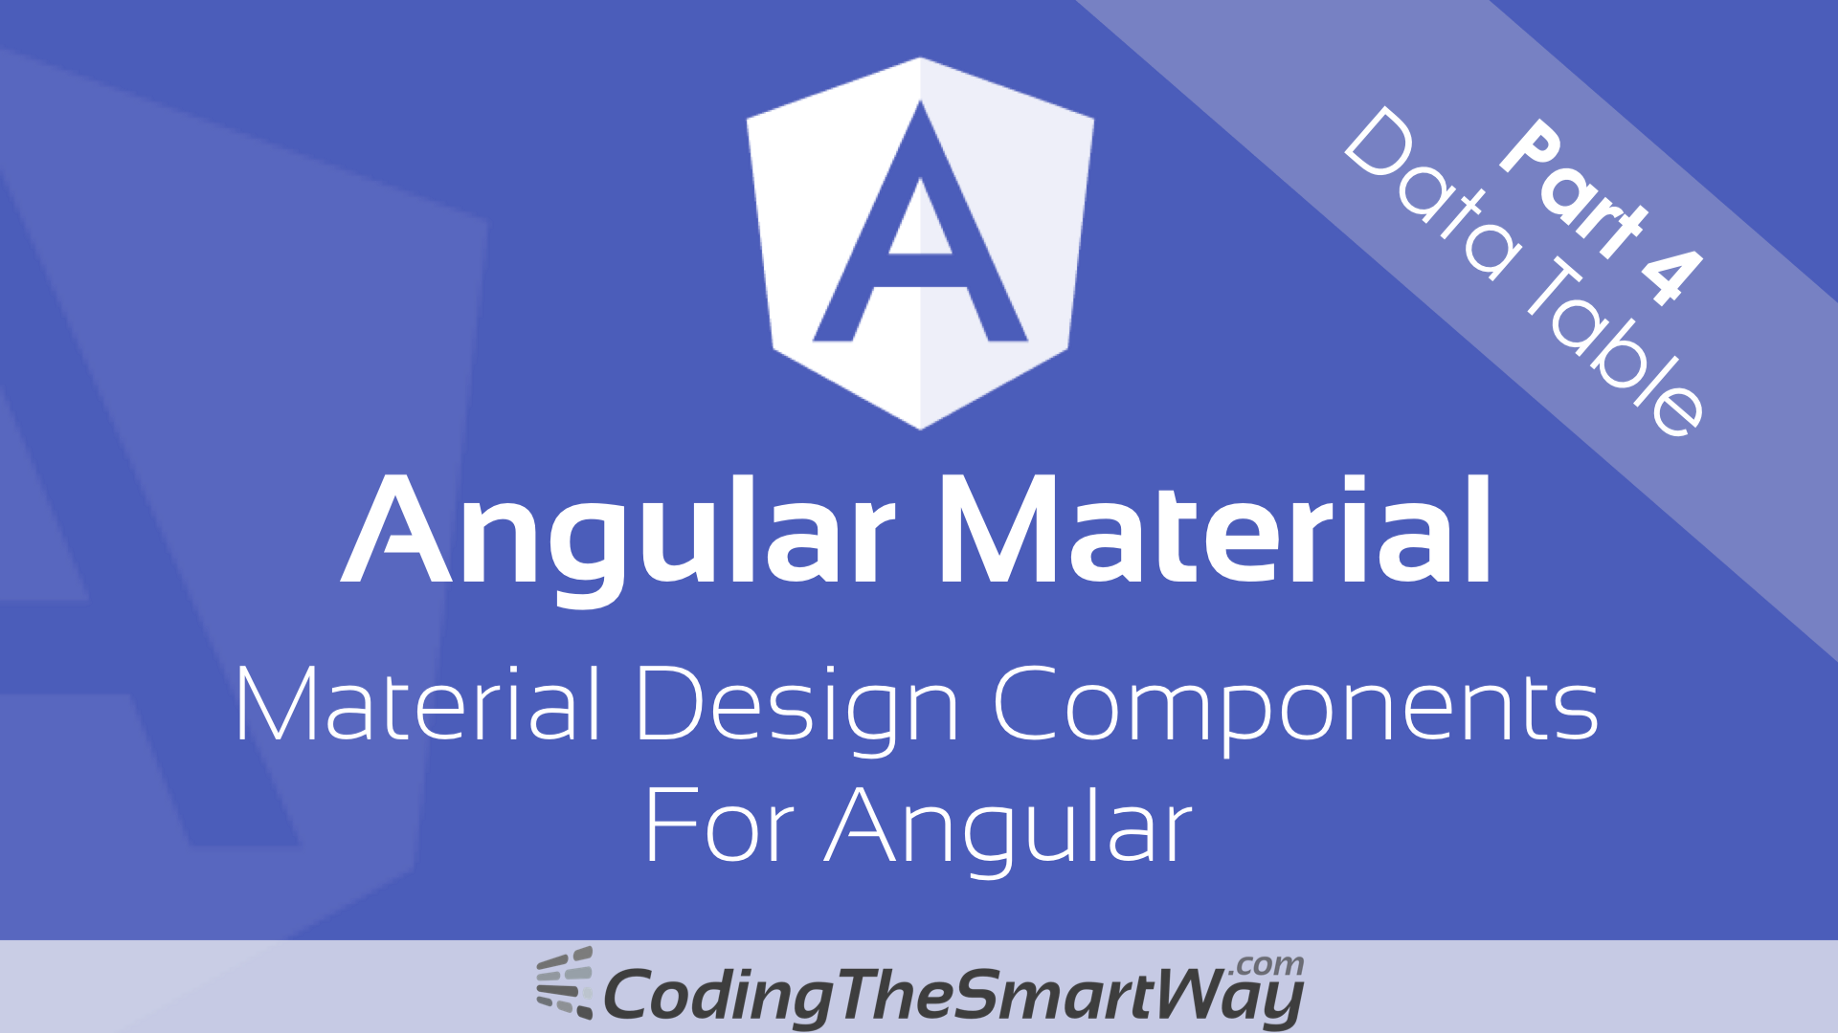 Angular Material — Part 4: Data Table - CodingTheSmartWay com Blog